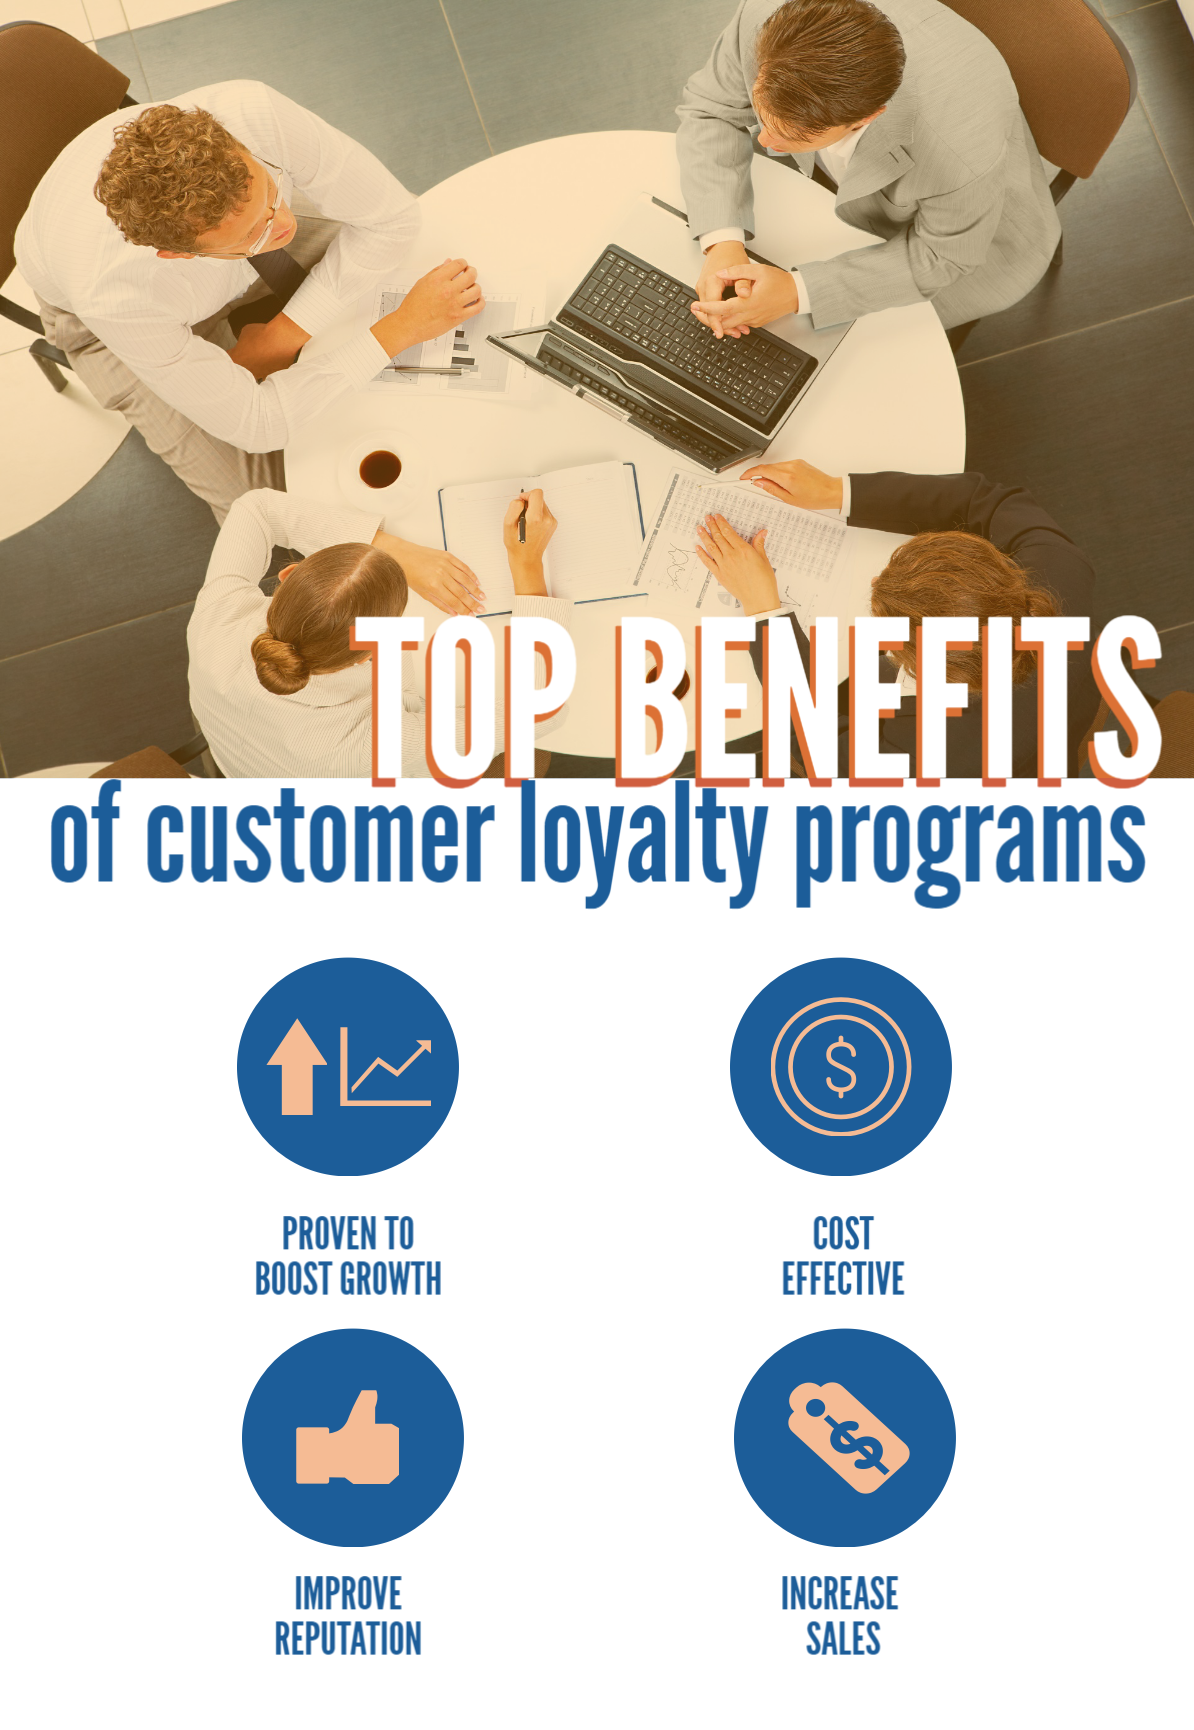 benefits of customer loyalty programs